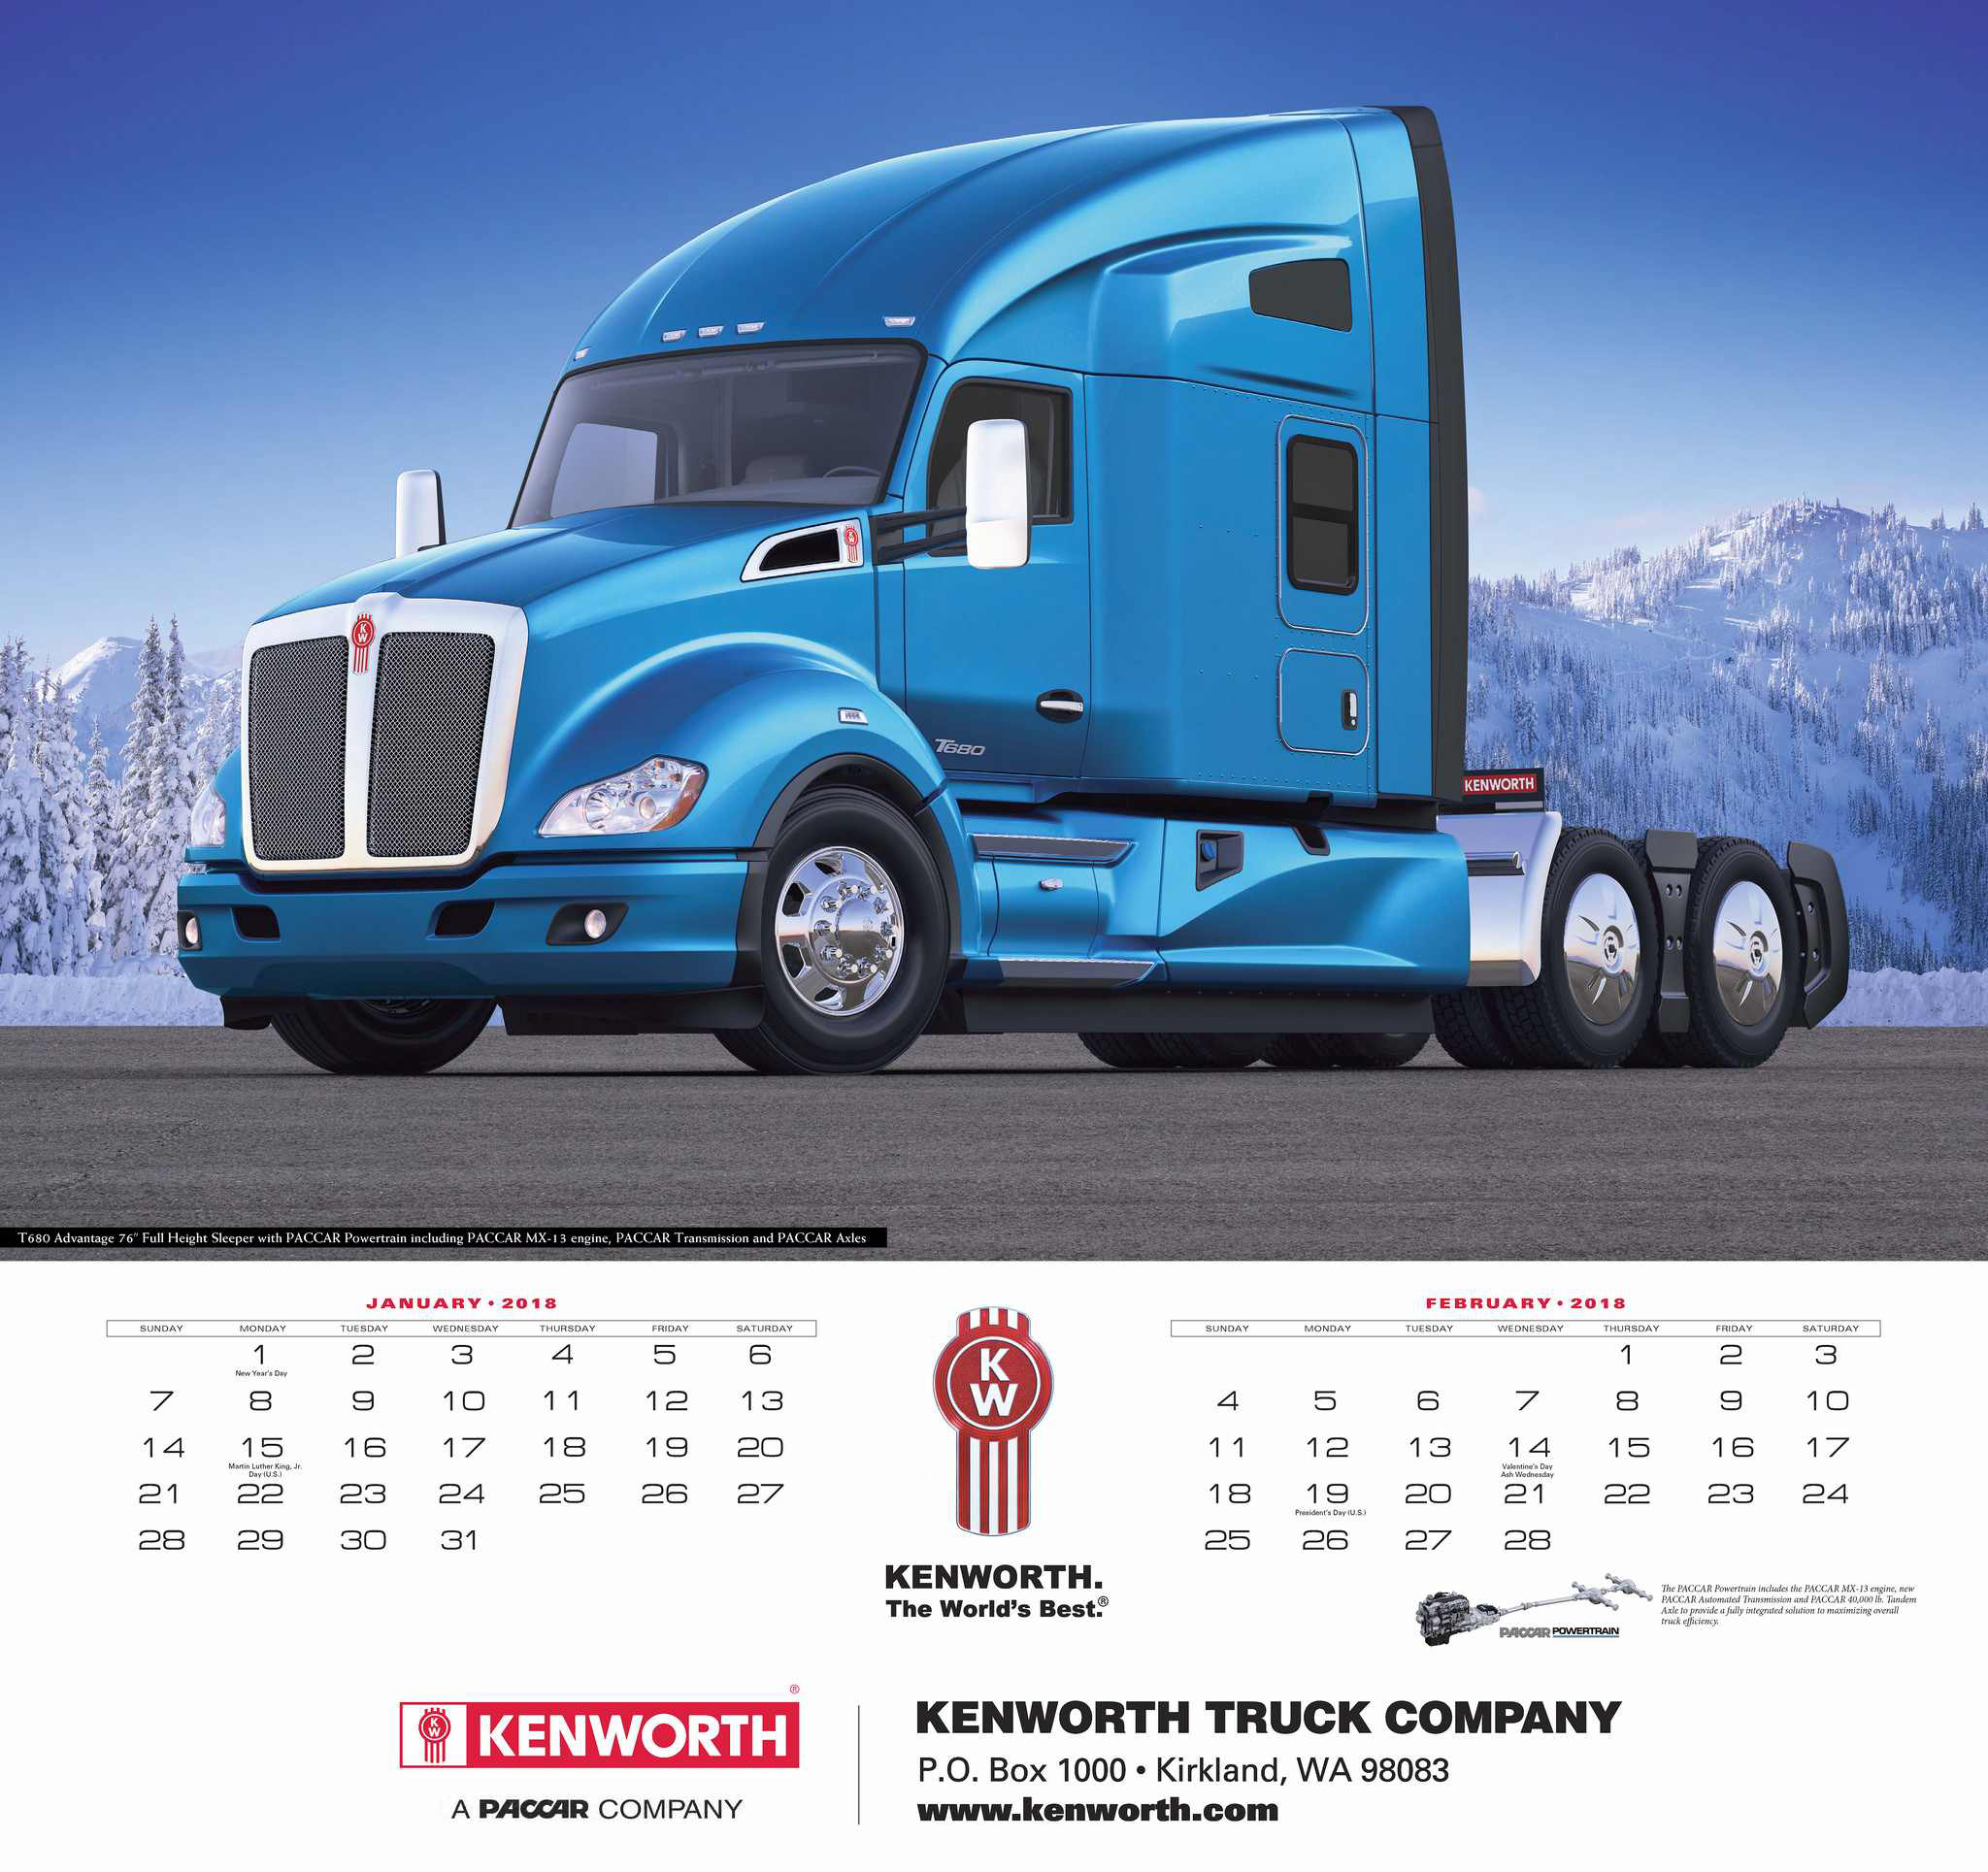 2018 kenworth calendars now available. Black Bedroom Furniture Sets. Home Design Ideas